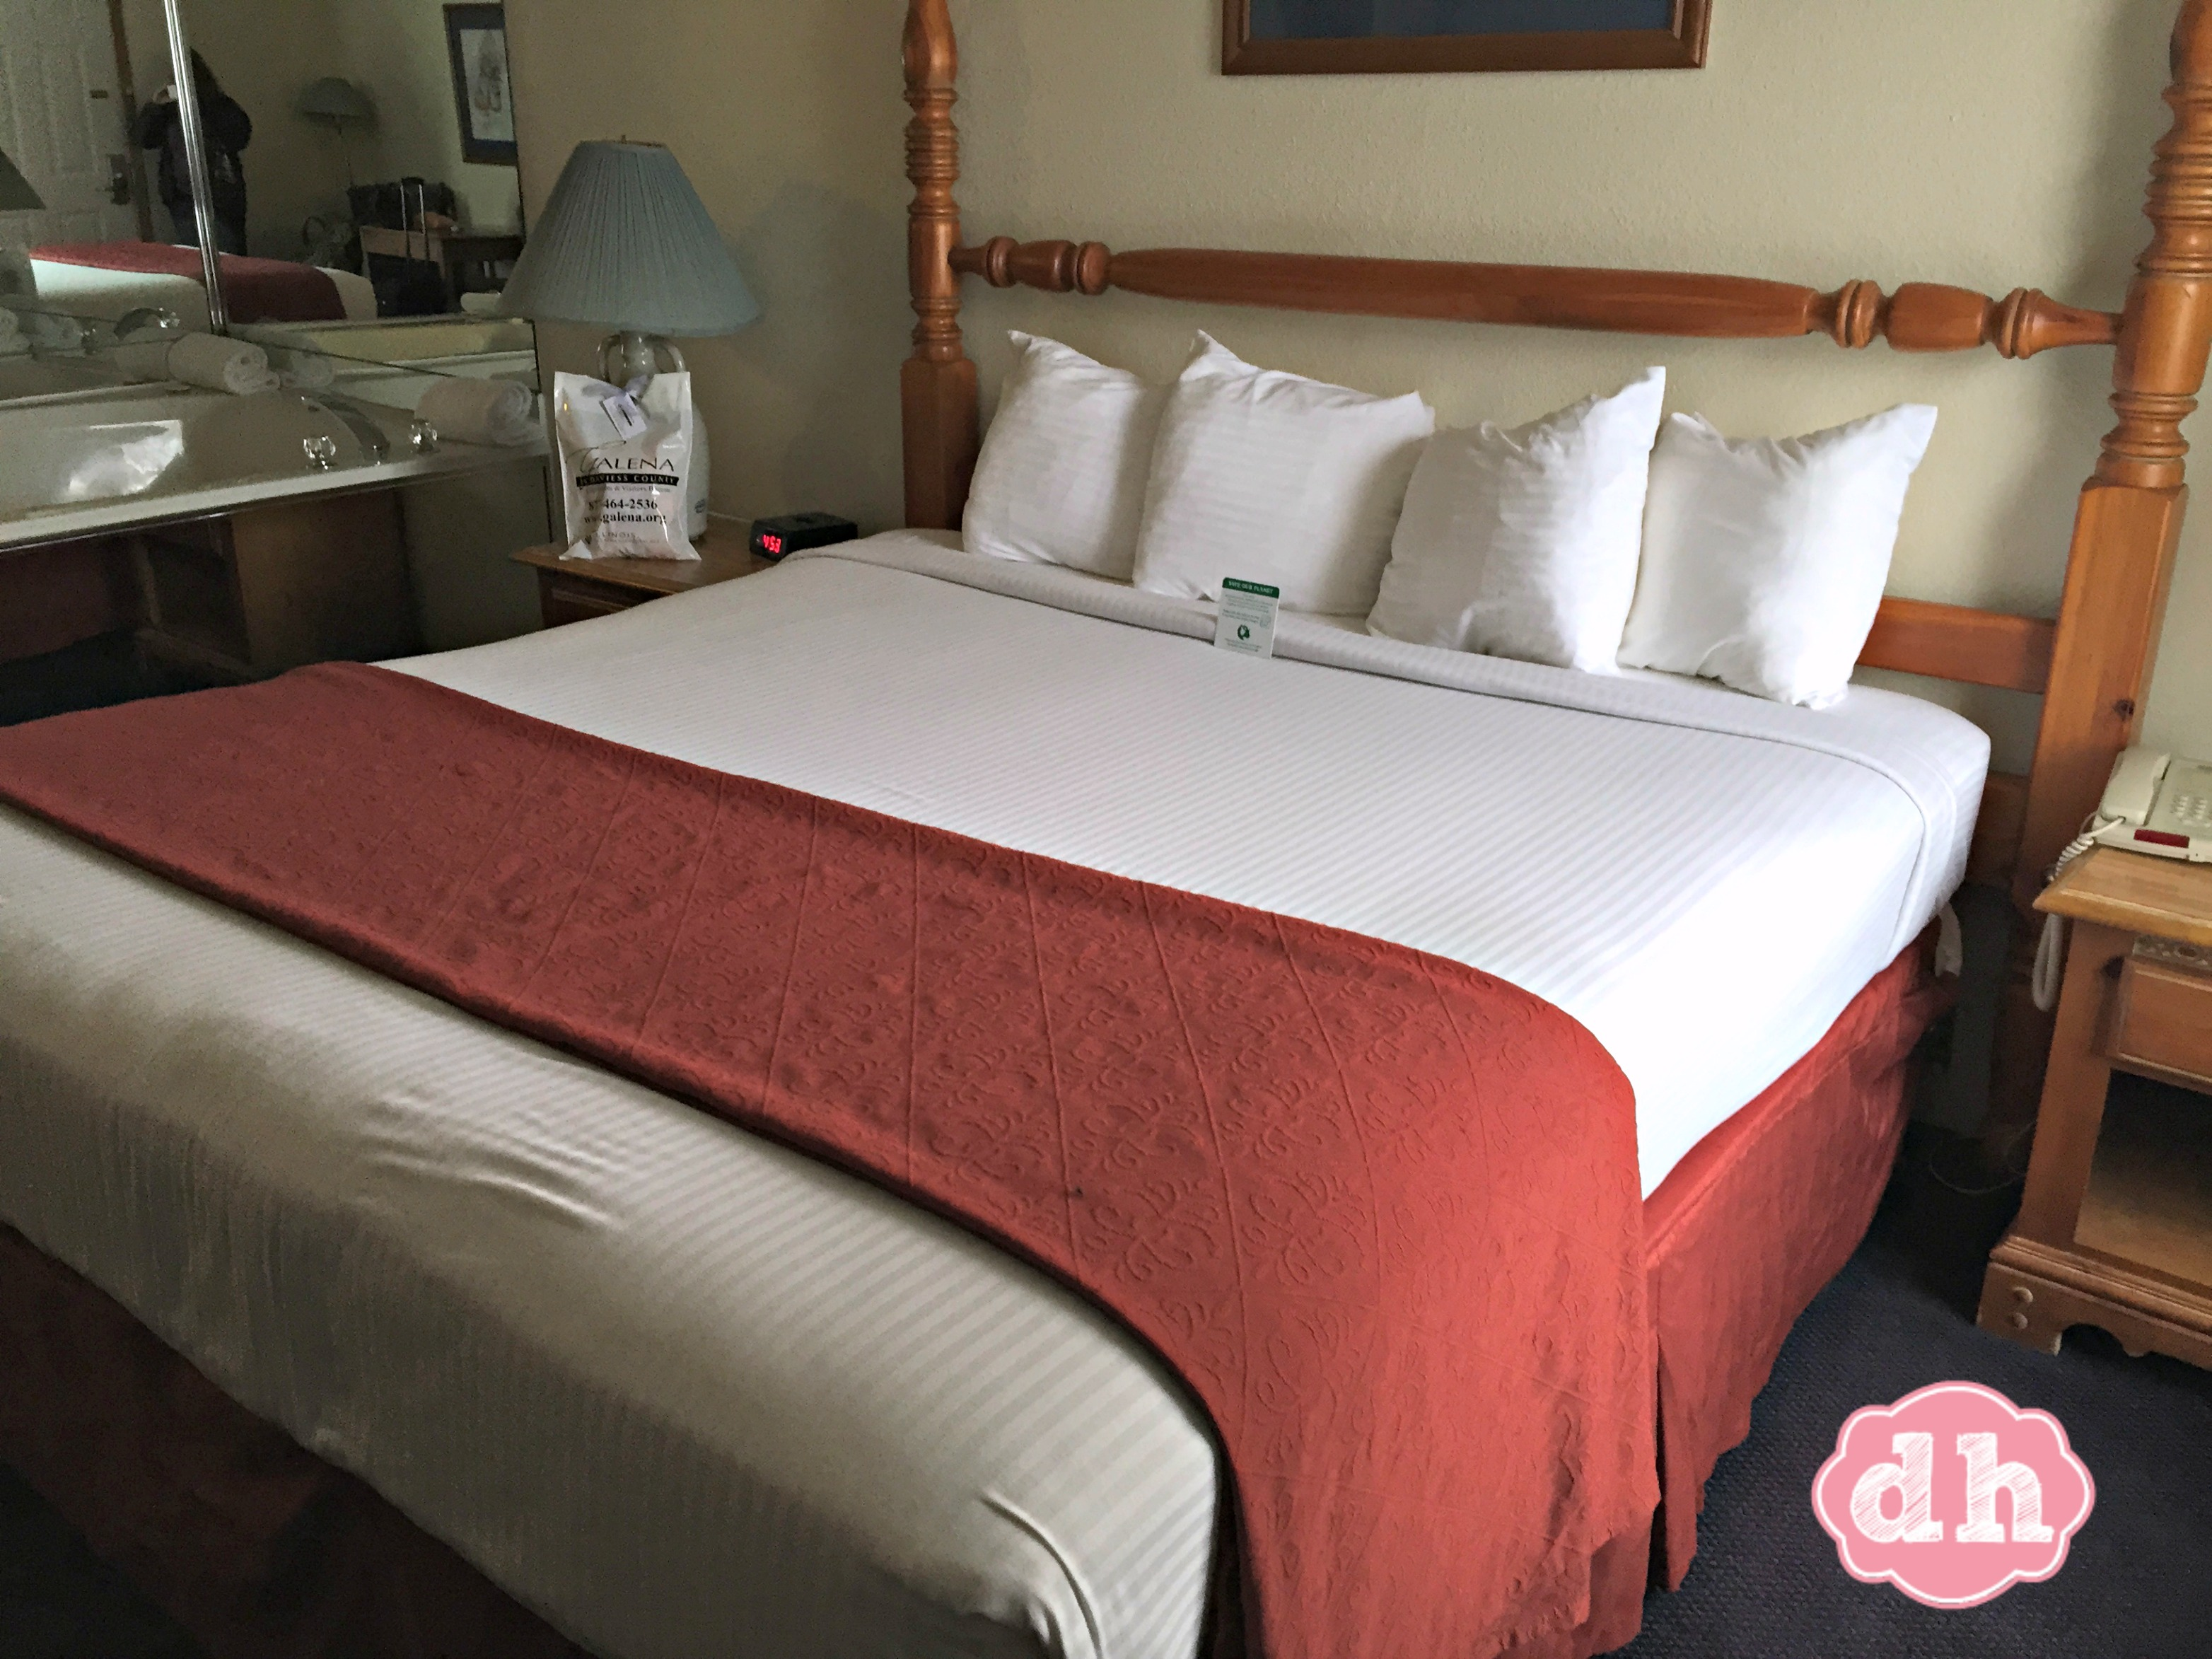 Relaxation at it's best! Best Western in Galena, IL #TravelGalena #EnjoyIllinois